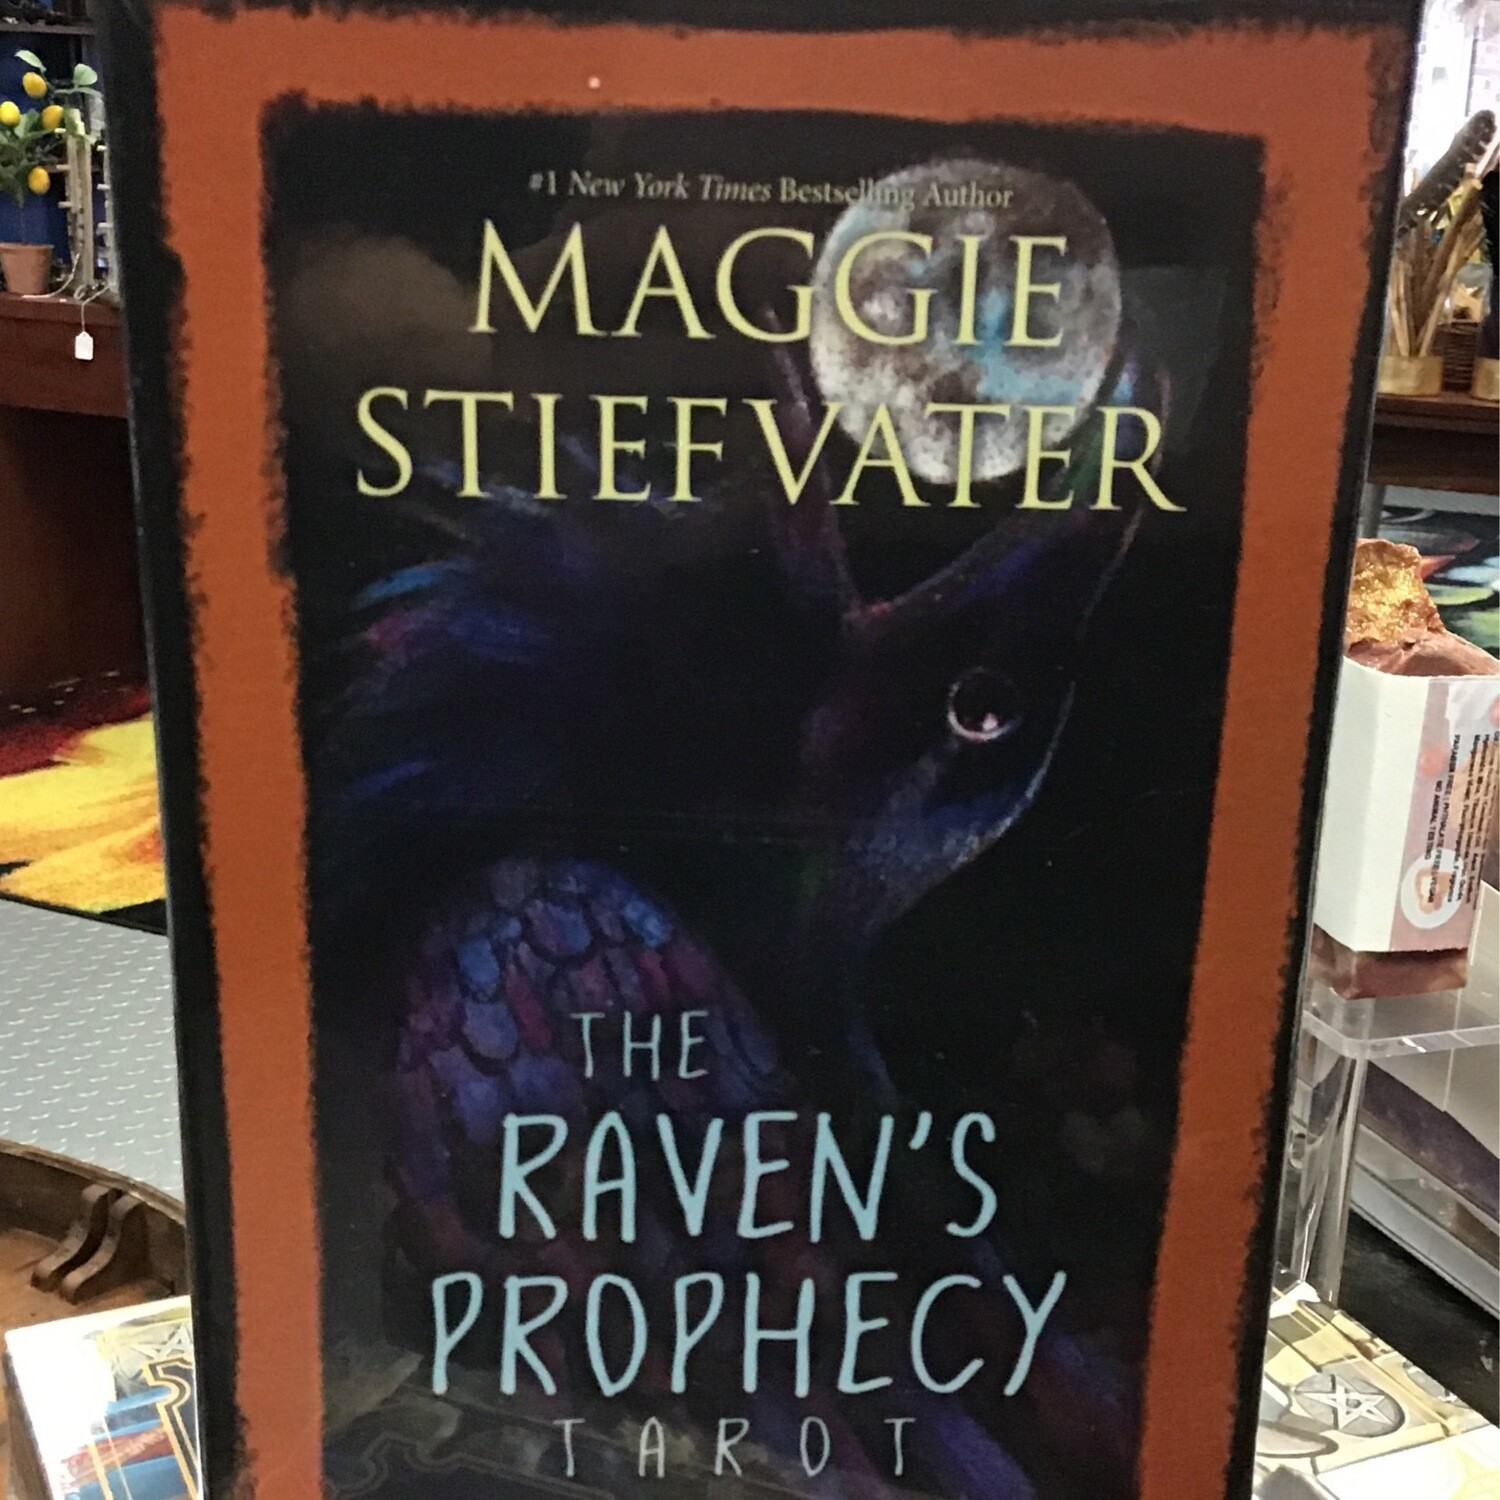 The Raven's Prophecy